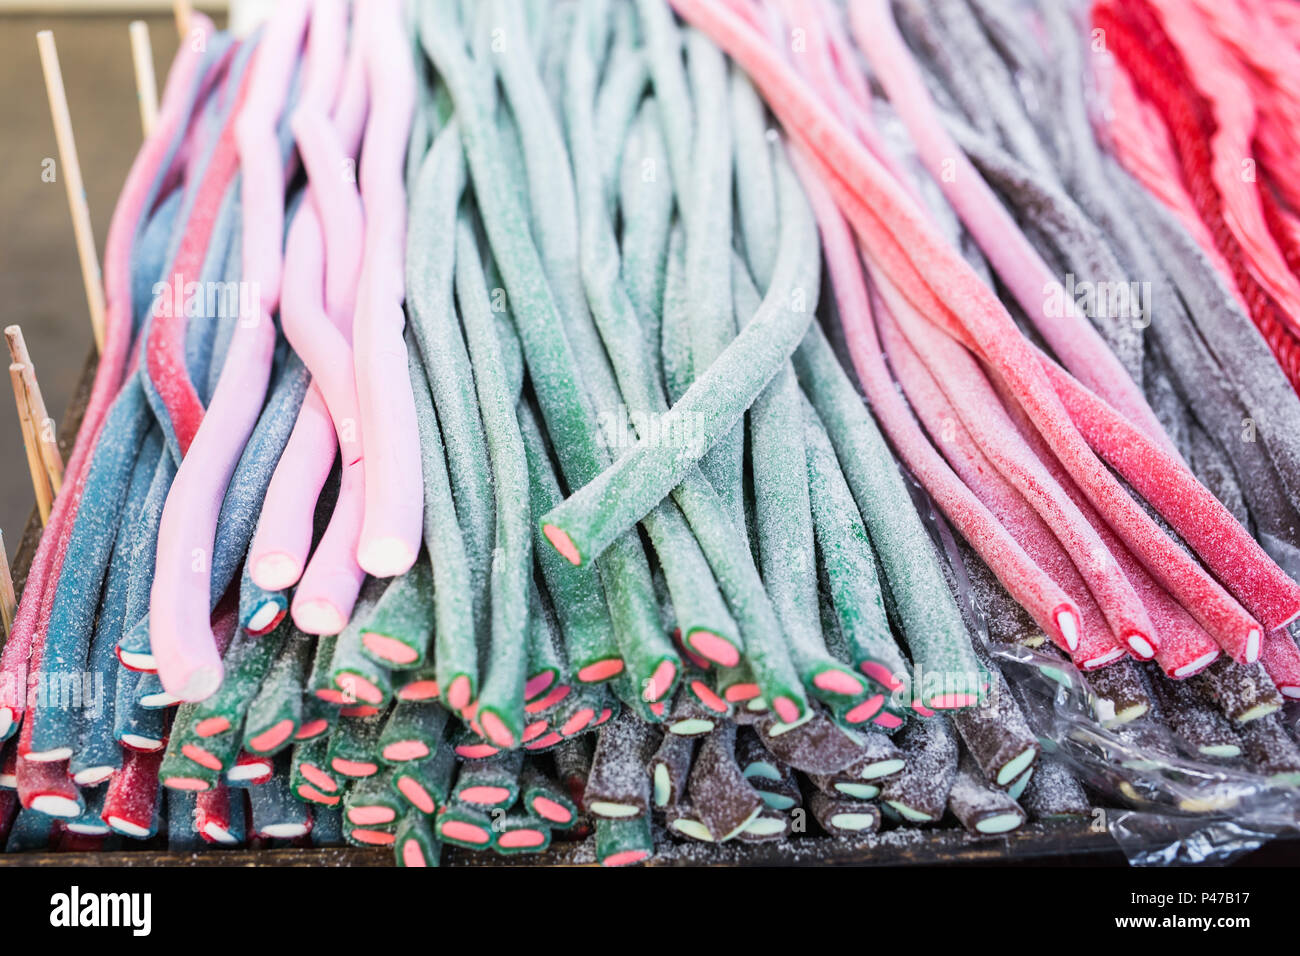 Candy sticks in any color and appearance - Stock Image